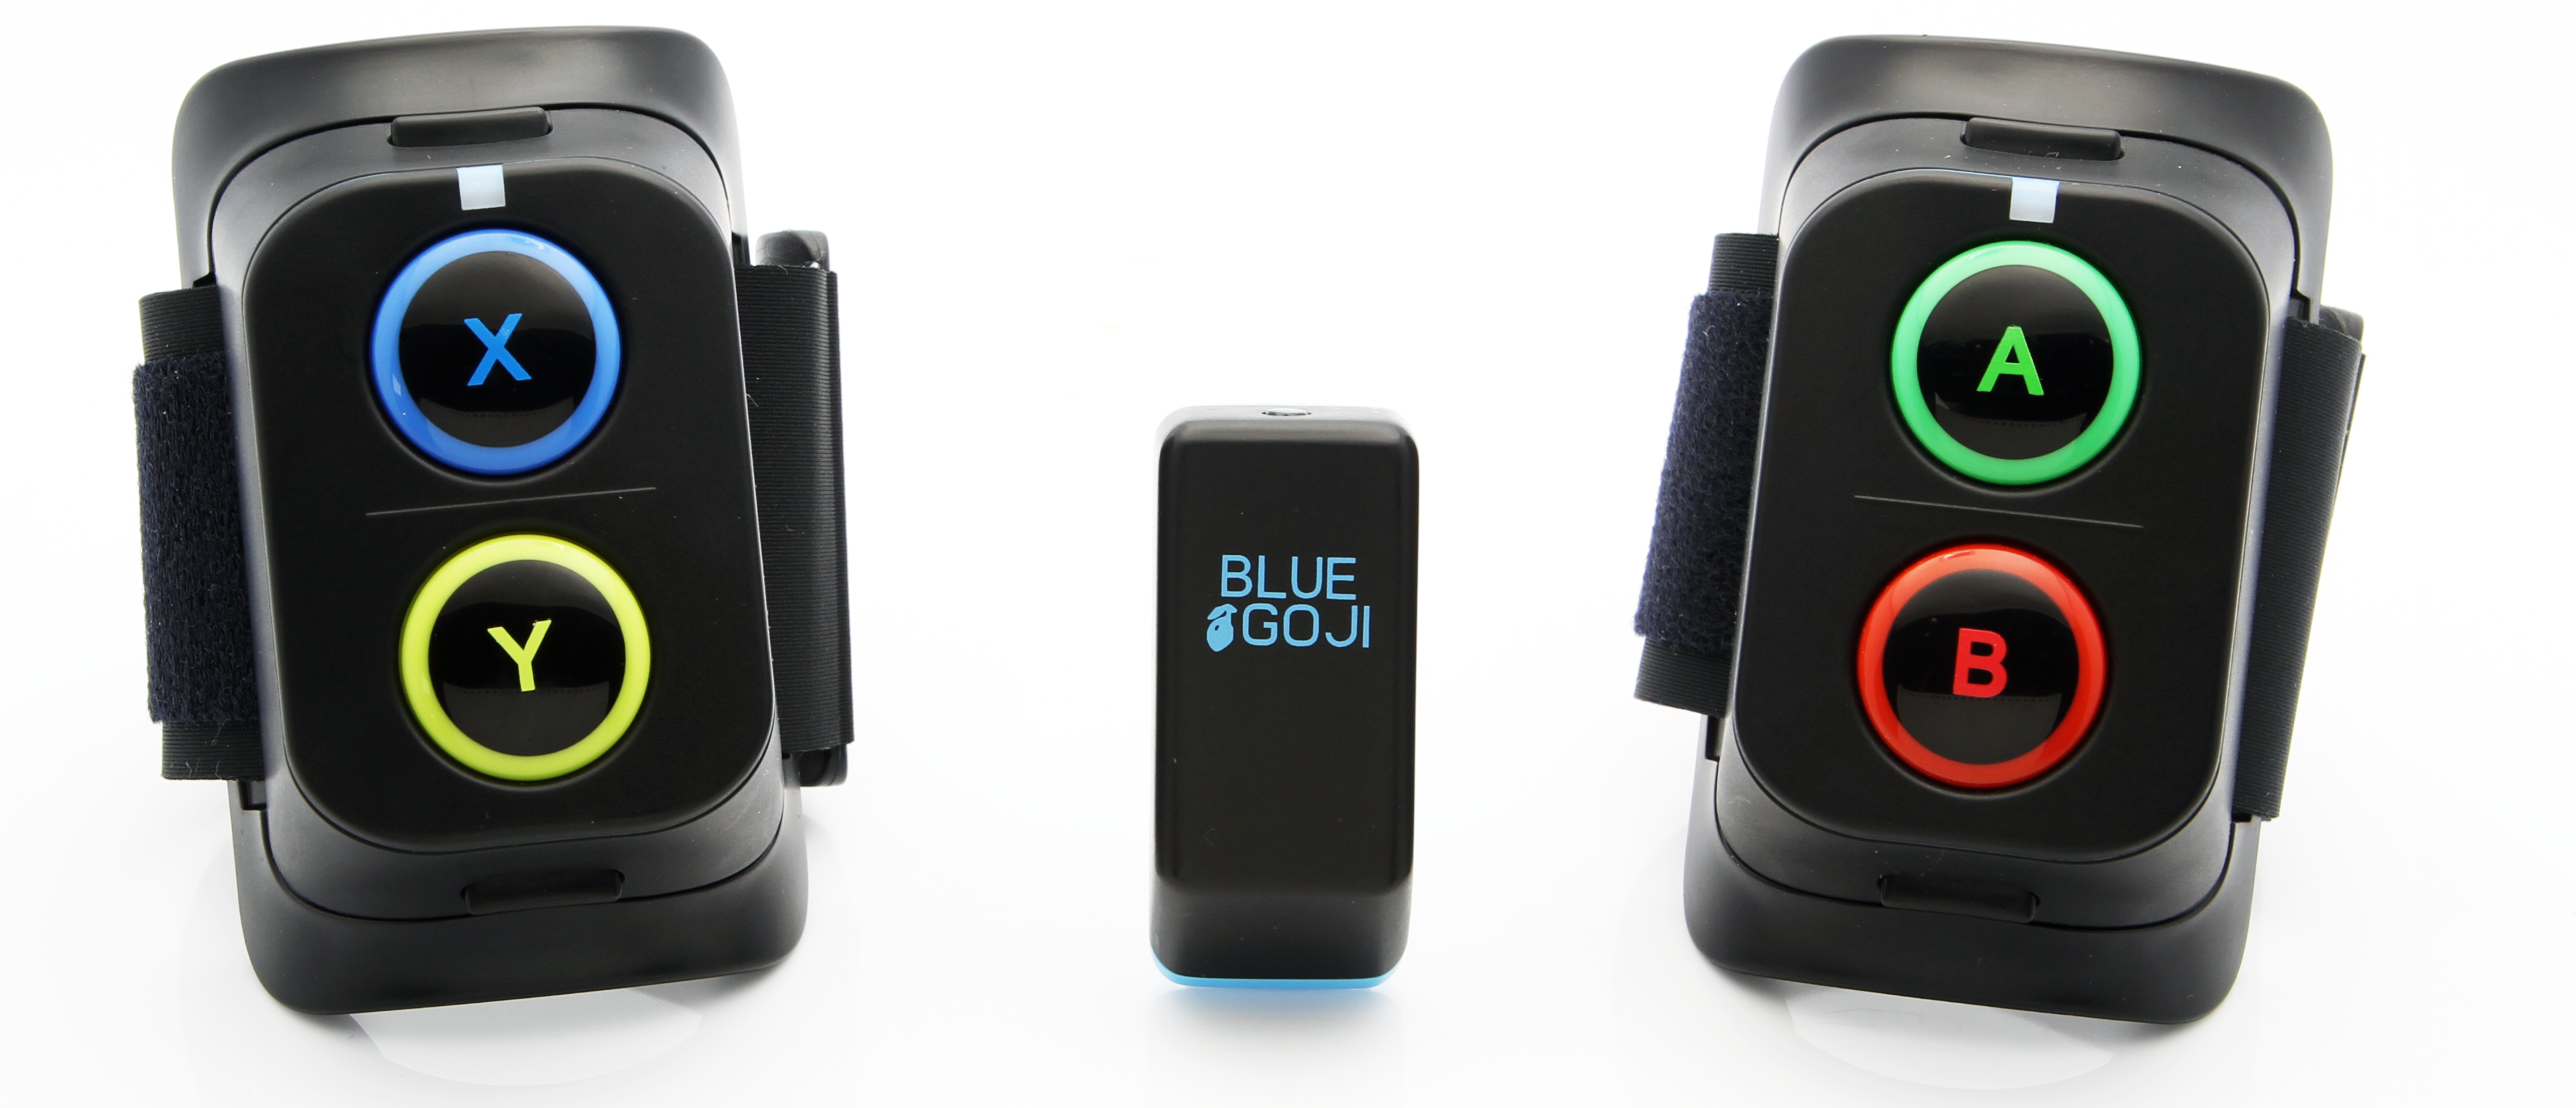 Blue Goji Teams Up With MyFitnessPal to Get Cardio-Gaming Devices in Shape